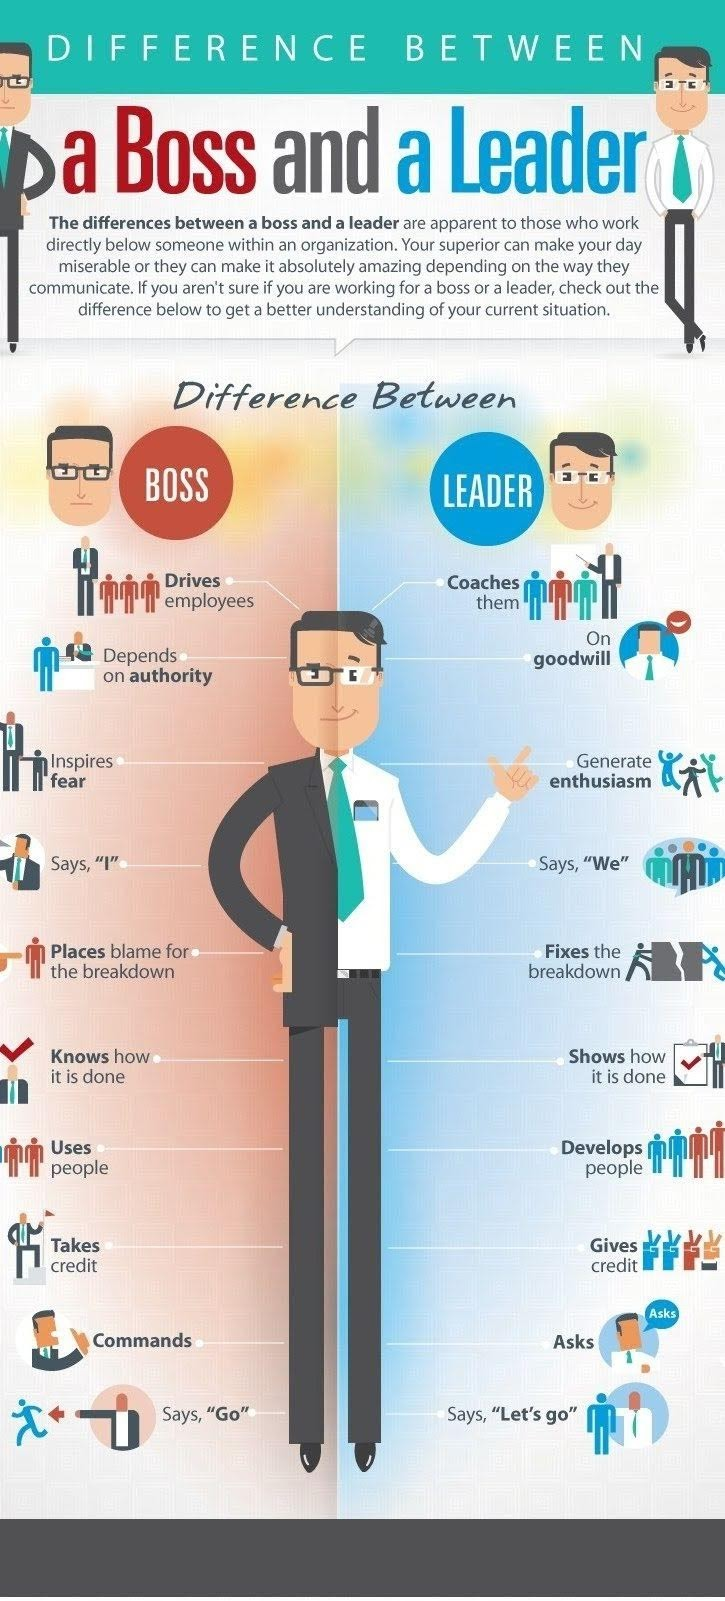 Difference Between a leader and a boss #infographic